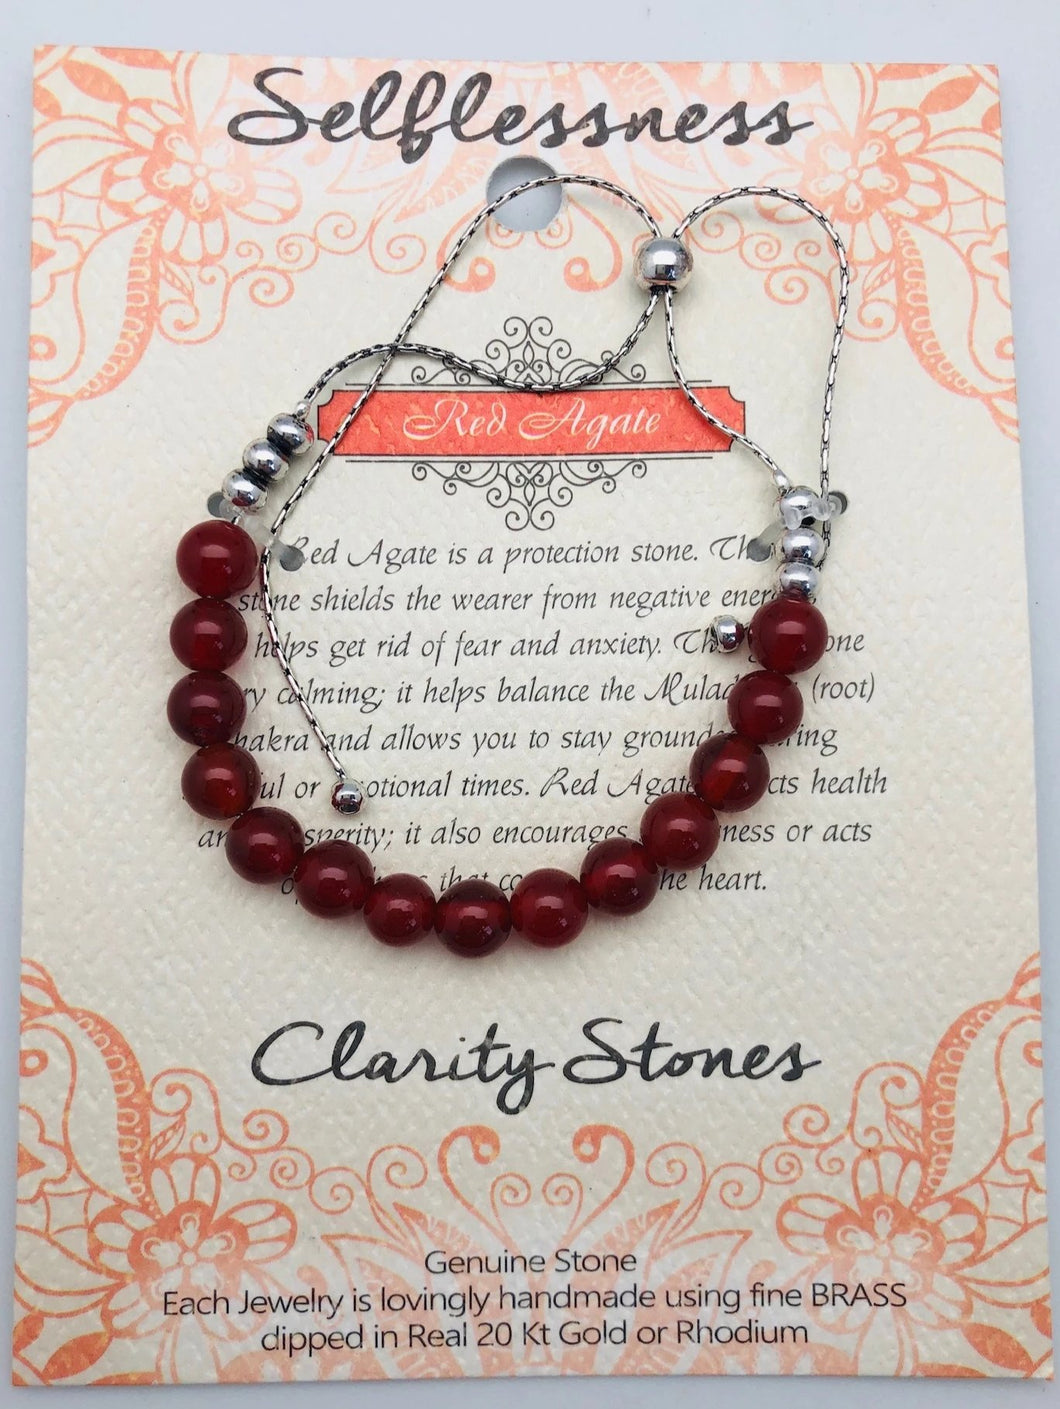 Red Agate Clarity Stone Bracelet Selflessness and Peace